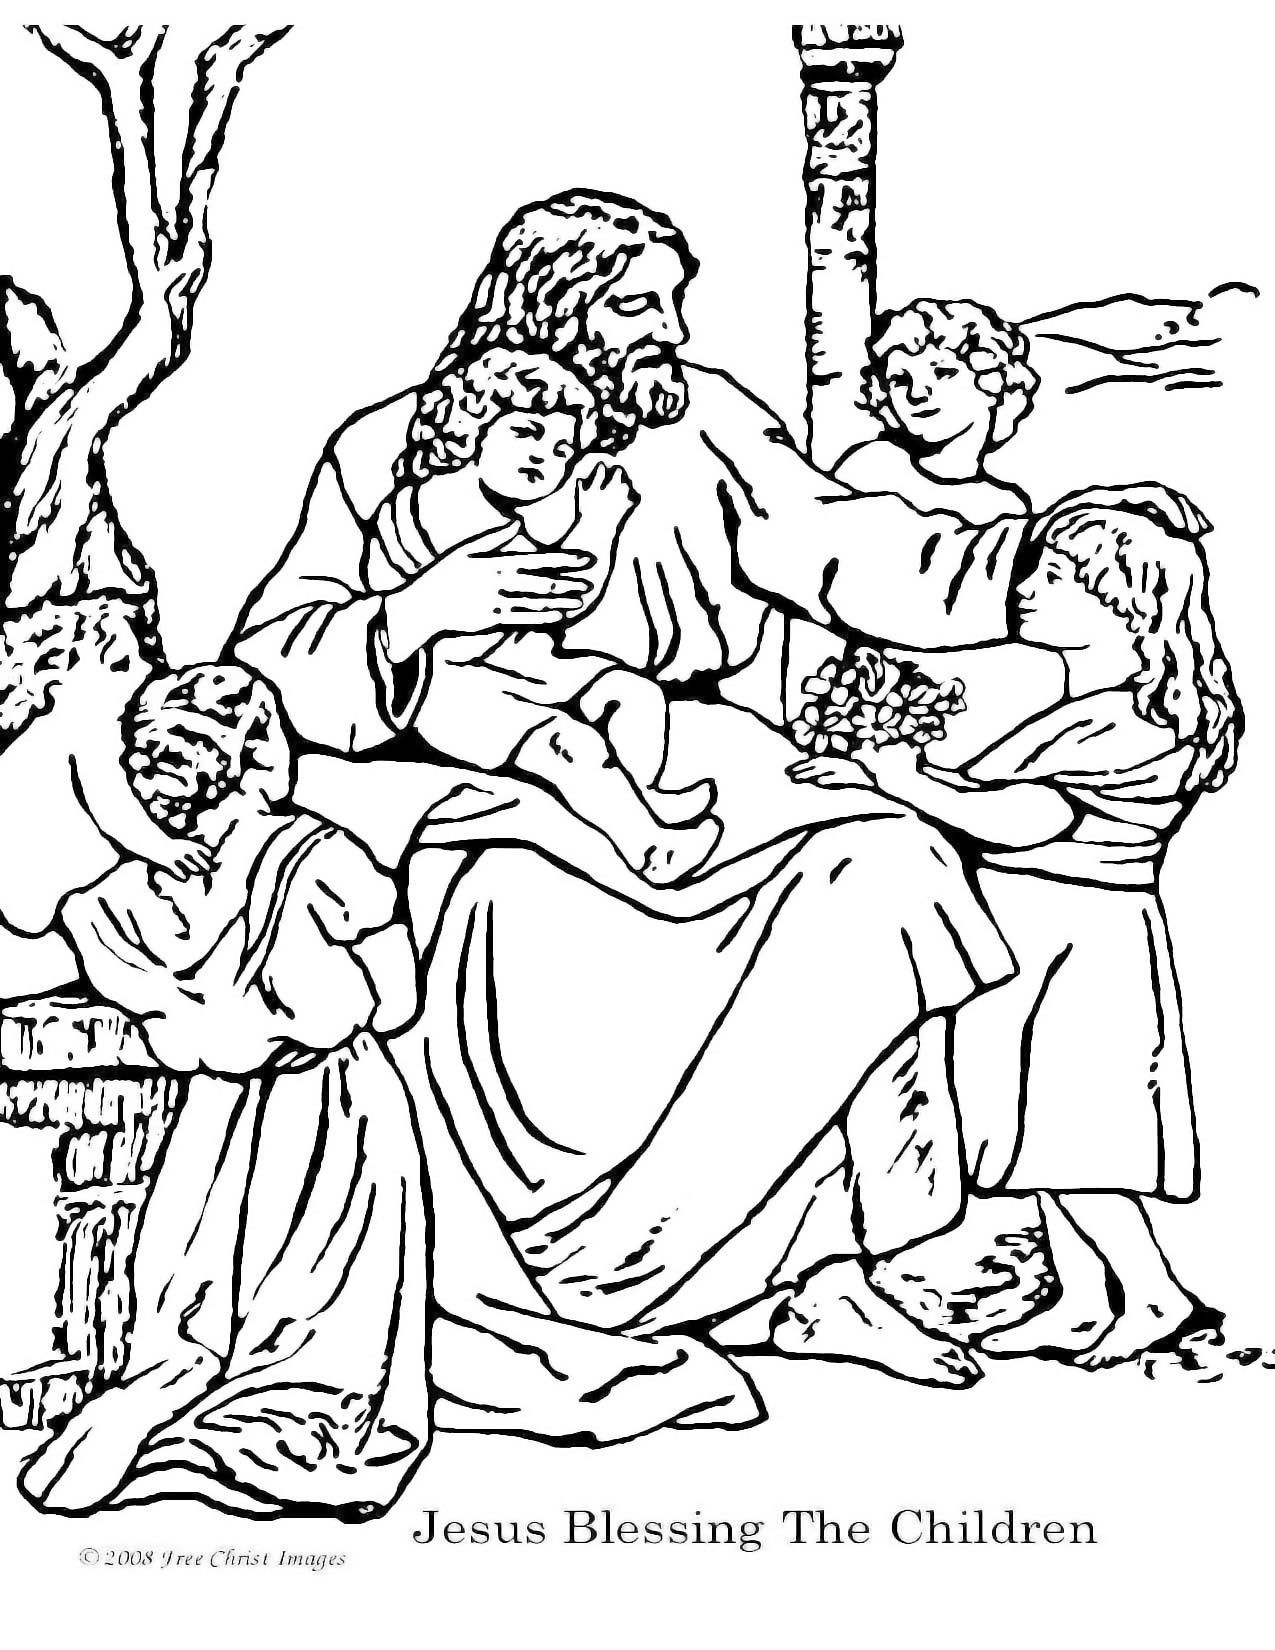 Printable coloring pages david and goliath - David And Goliath Coloring Pages Free Bible Coloring Book Pages Printable Bible Coloring Page